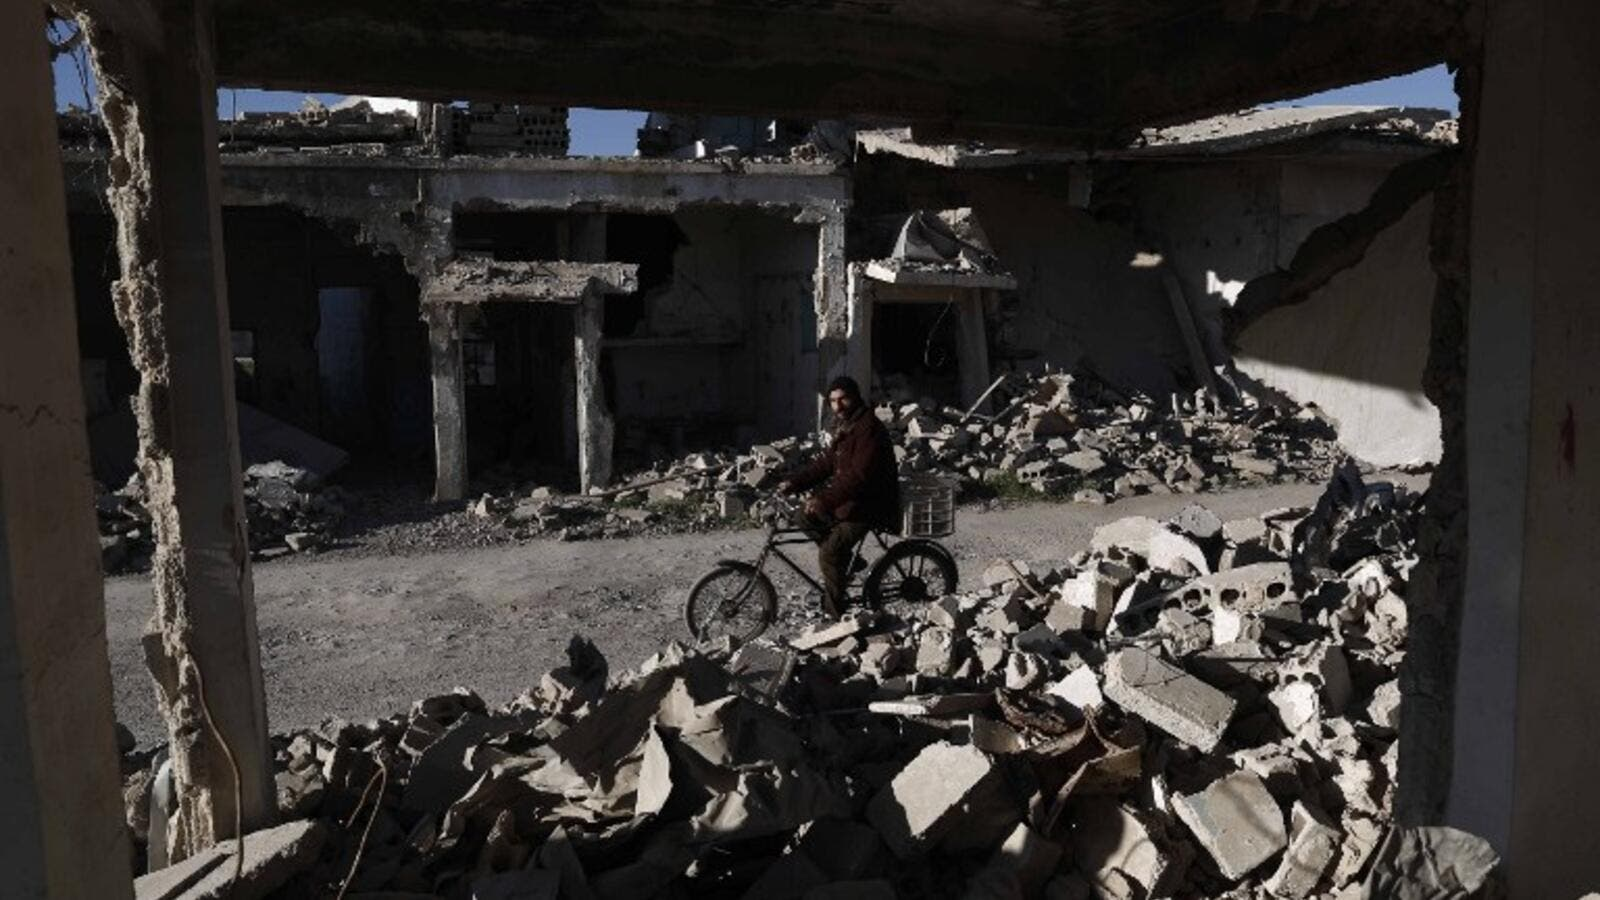 A Syrian man rides his bicycle past the rubble of destroyed buildings on March 7, 2016, in the rebel-held town of Douma, on the outskirts of the capital Damascus. (AFP/Sameer Al-Doumy)